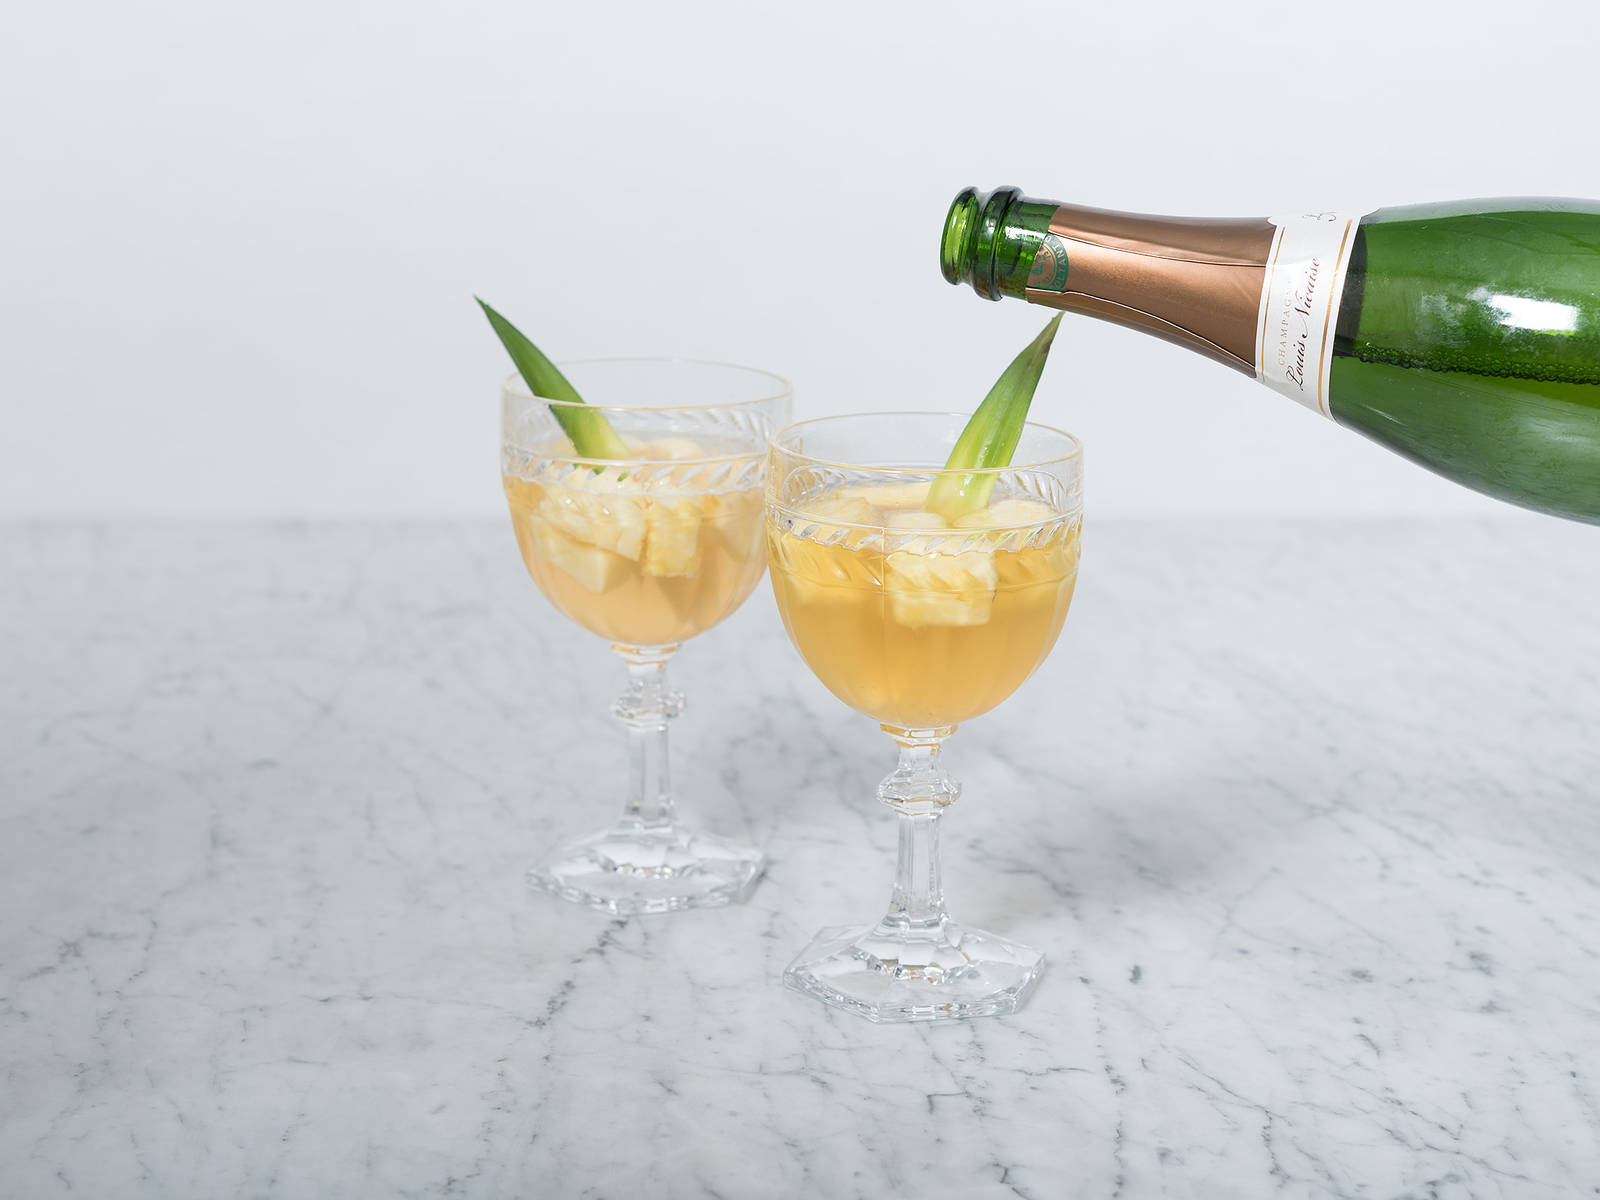 Serve in stemmed glasses, top with Champagne, and garnish with berries and pineapple leaves.  Enjoy!